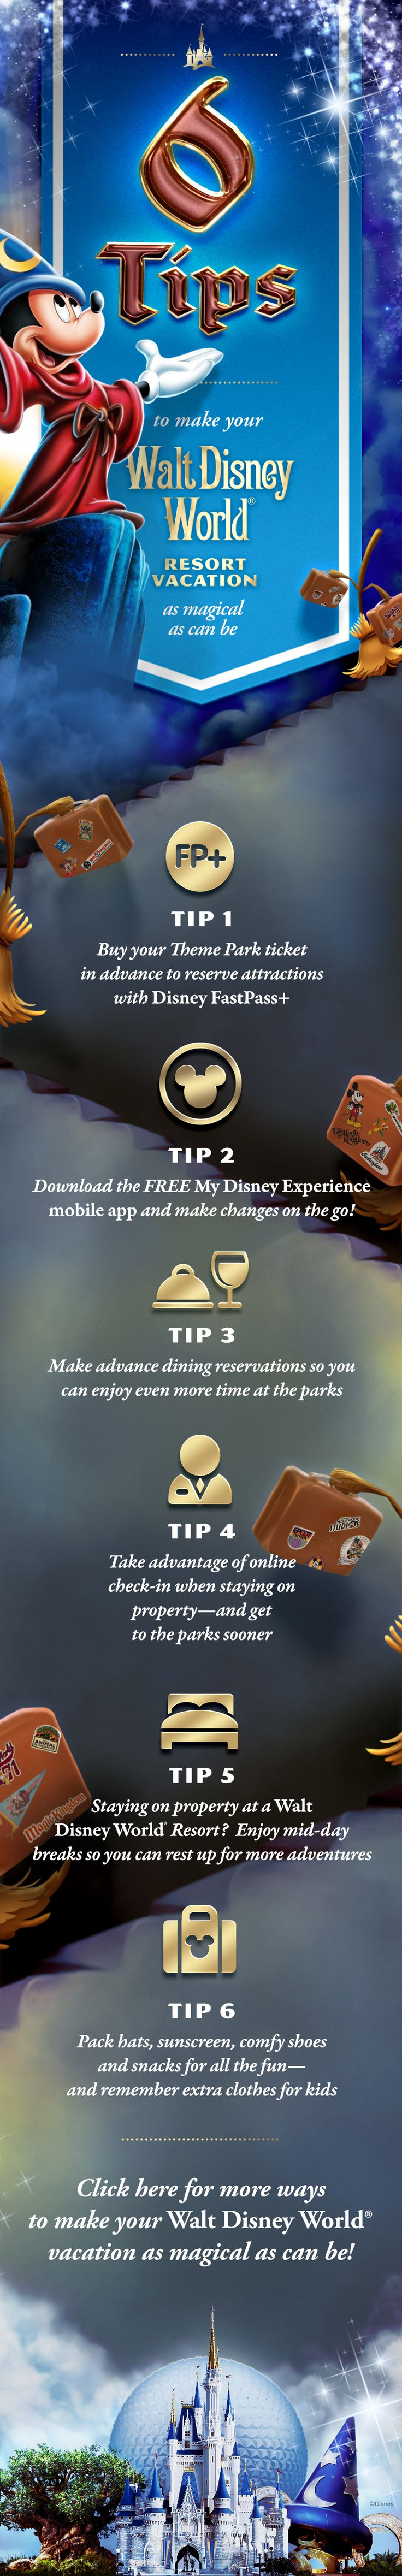 6 Tips to make your Walt Disney World Resort Vacation Magical! #MickeyMouse #Vacation #Tips #Tricks